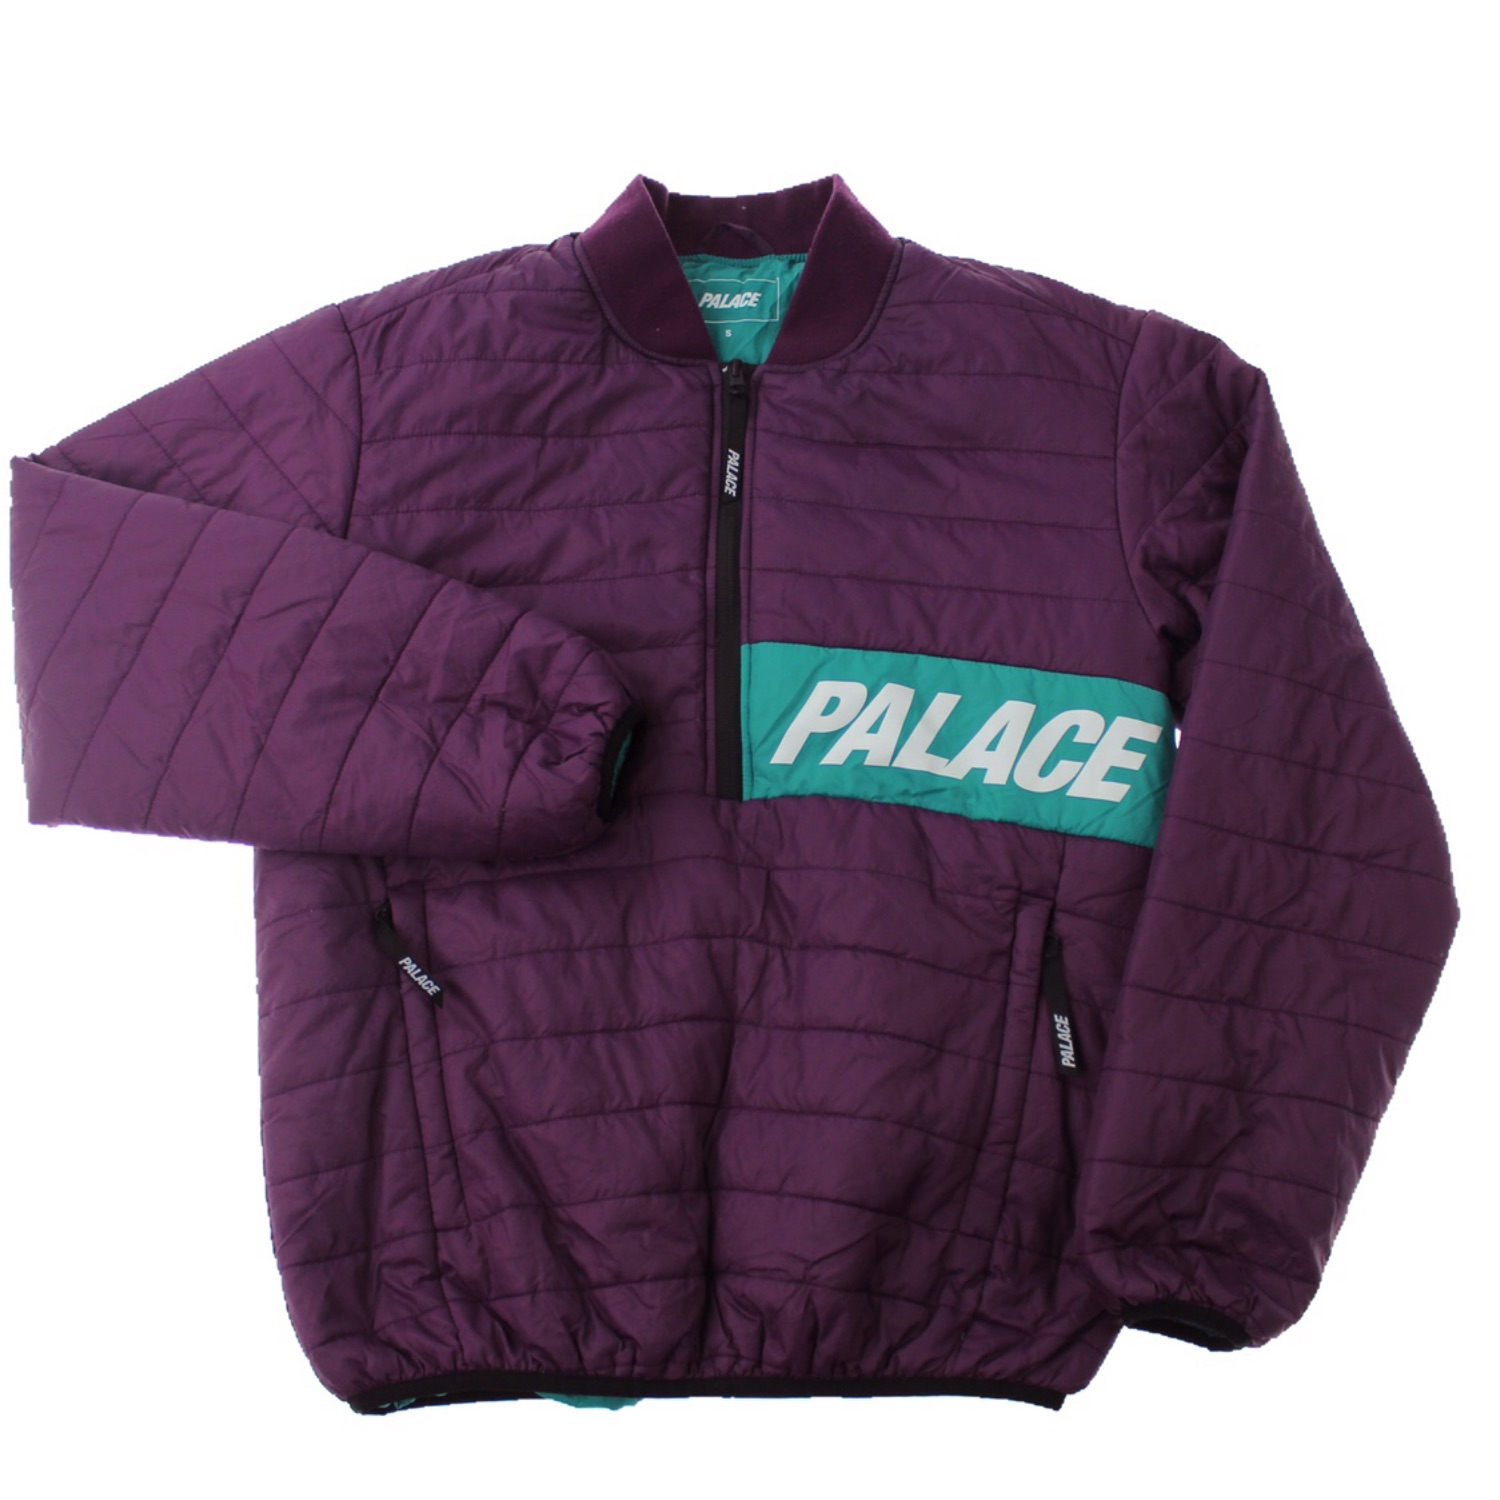 Palace Pullover Down Jacket